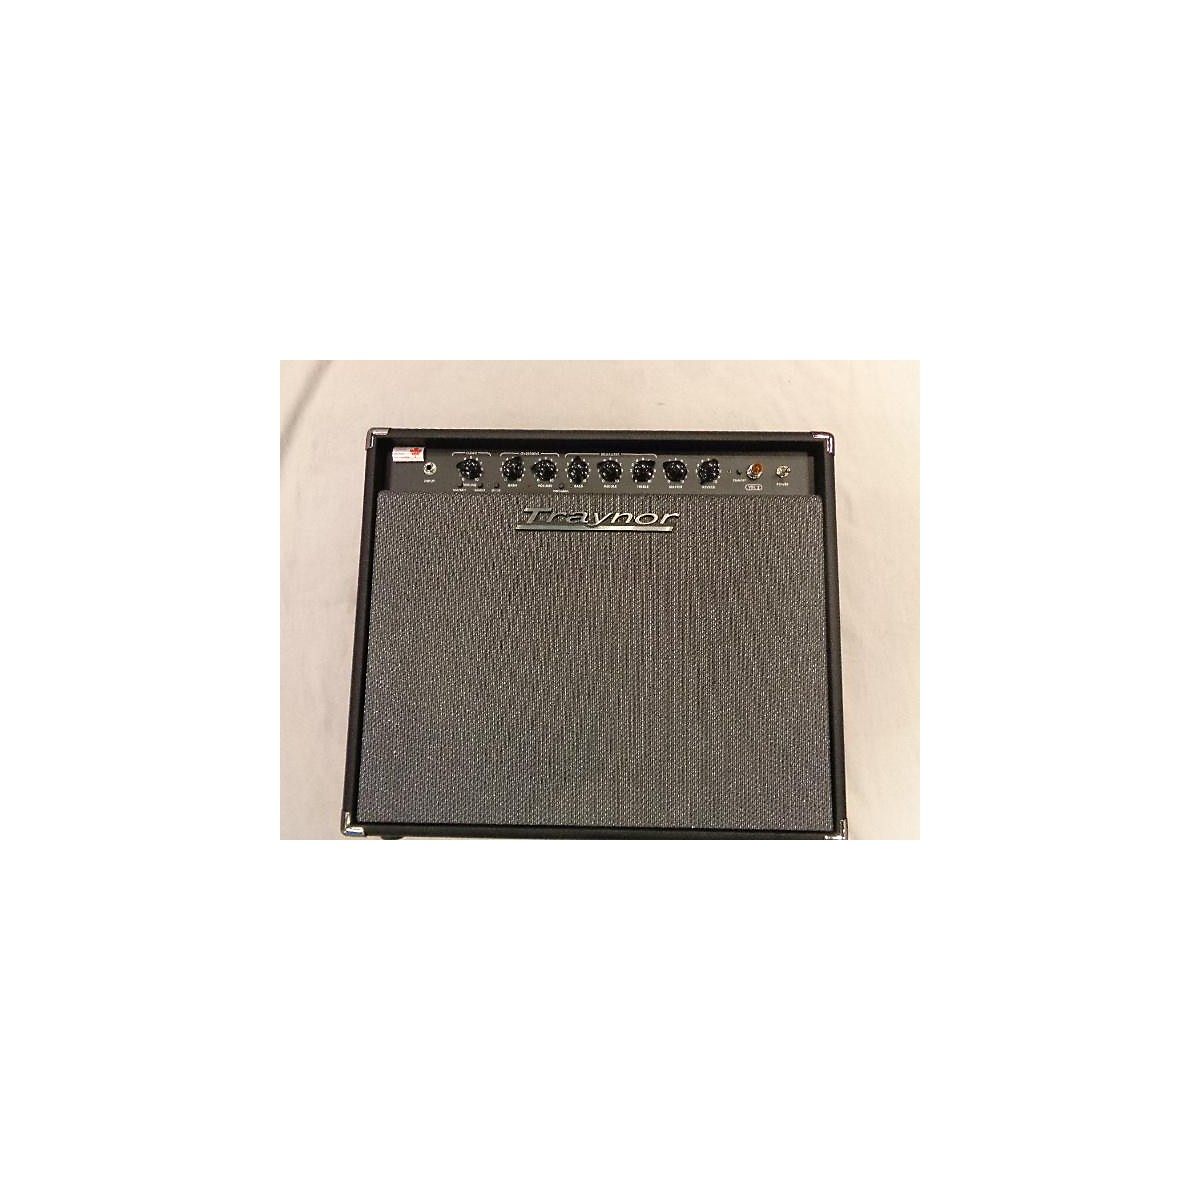 Traynor Ygl 2 Tube Guitar Combo Amp